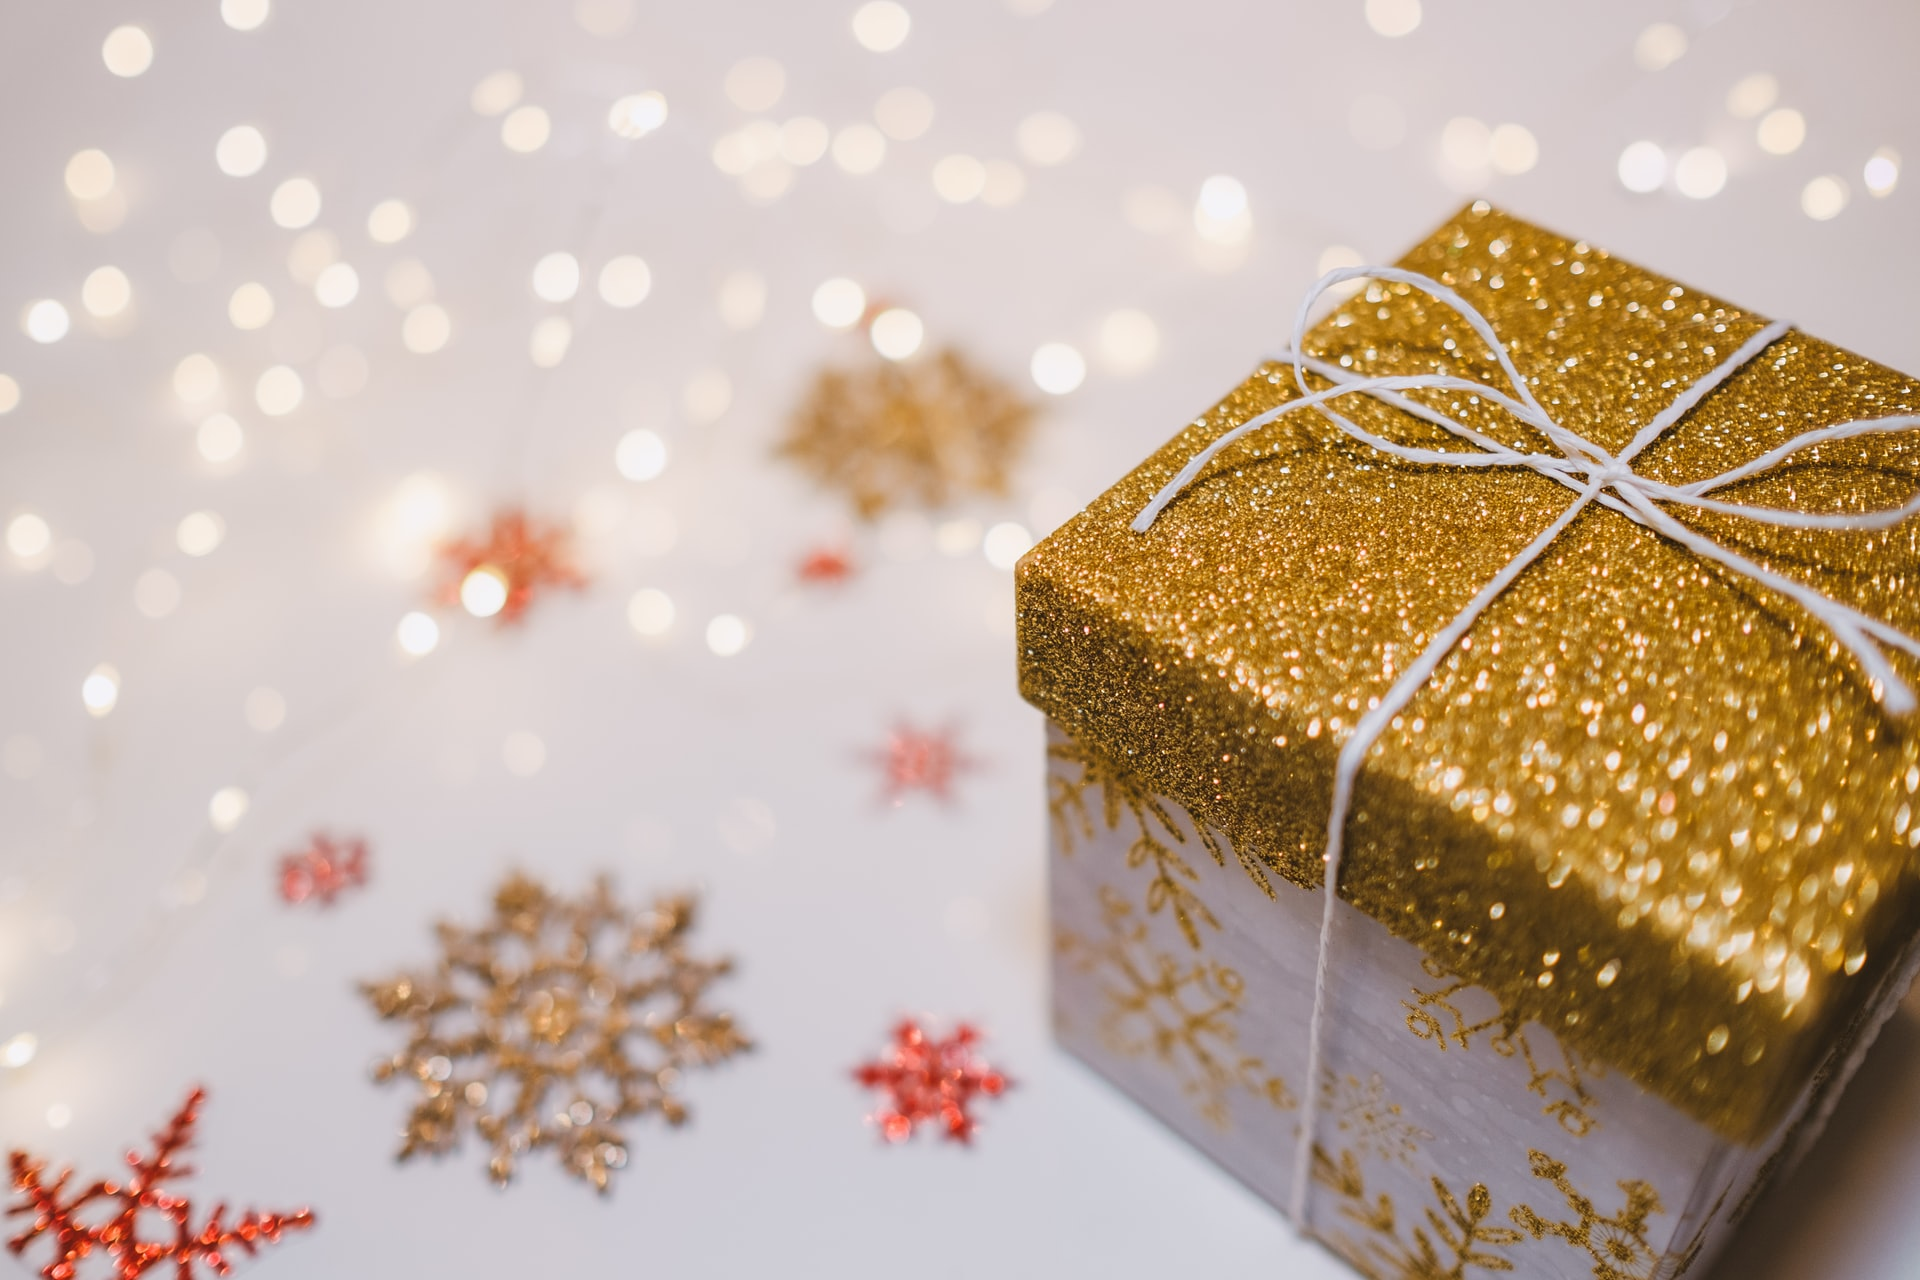 Make your early Christmas shopping count – give God's Word!